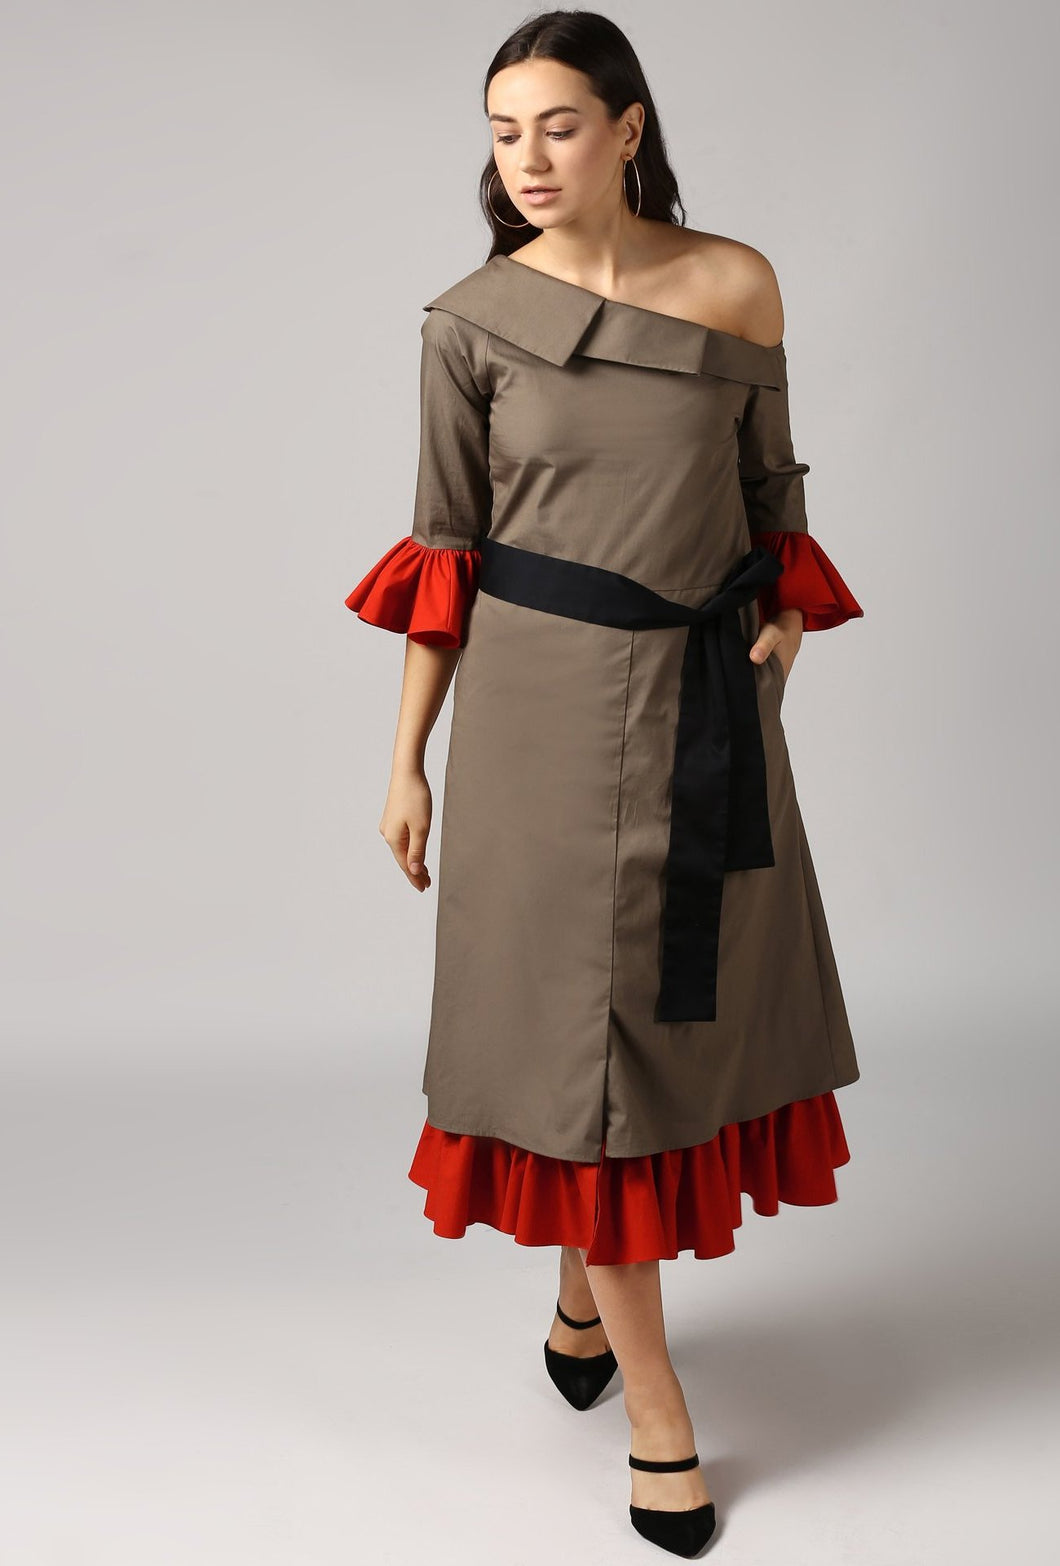 Olive Pleated Cascading Collar Layered One Shoulder Dress Style